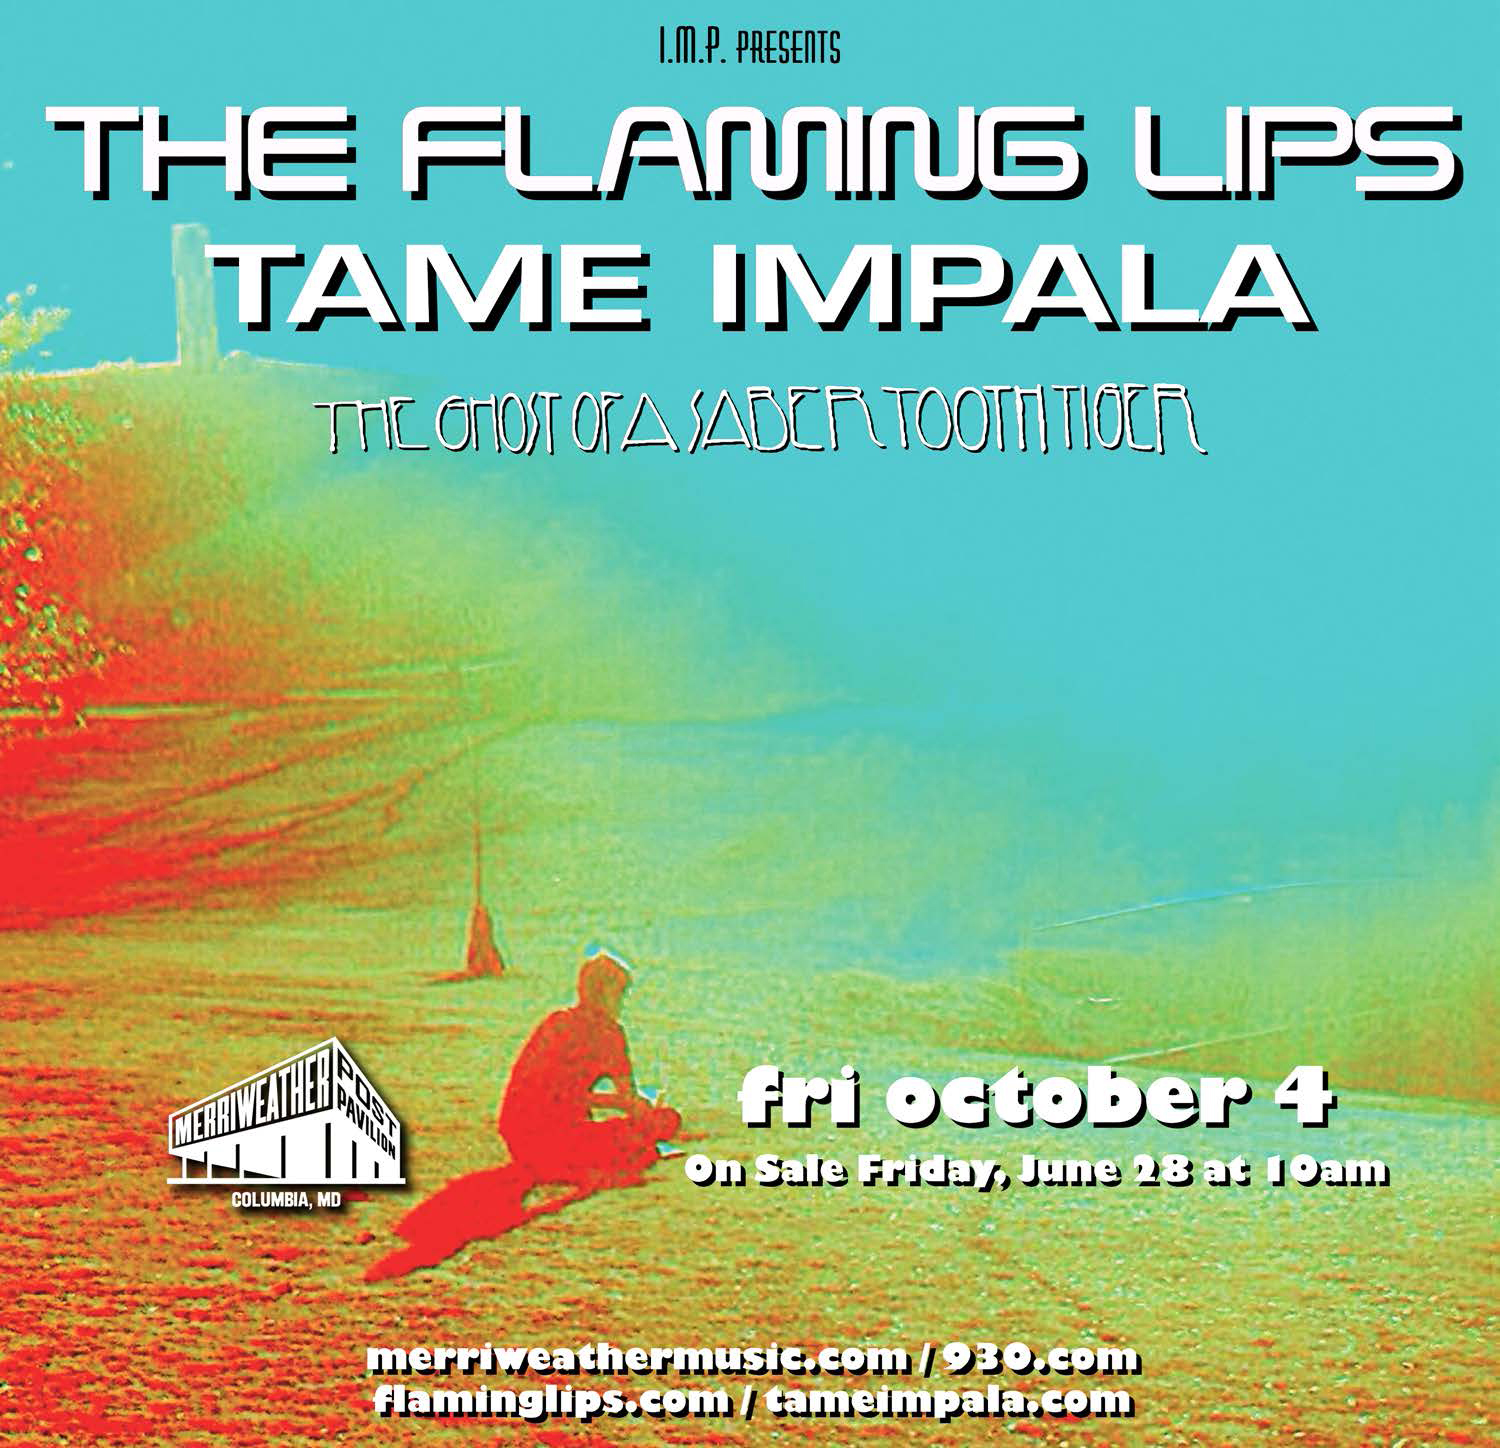 Flaming Lips Ticket Giveaway!